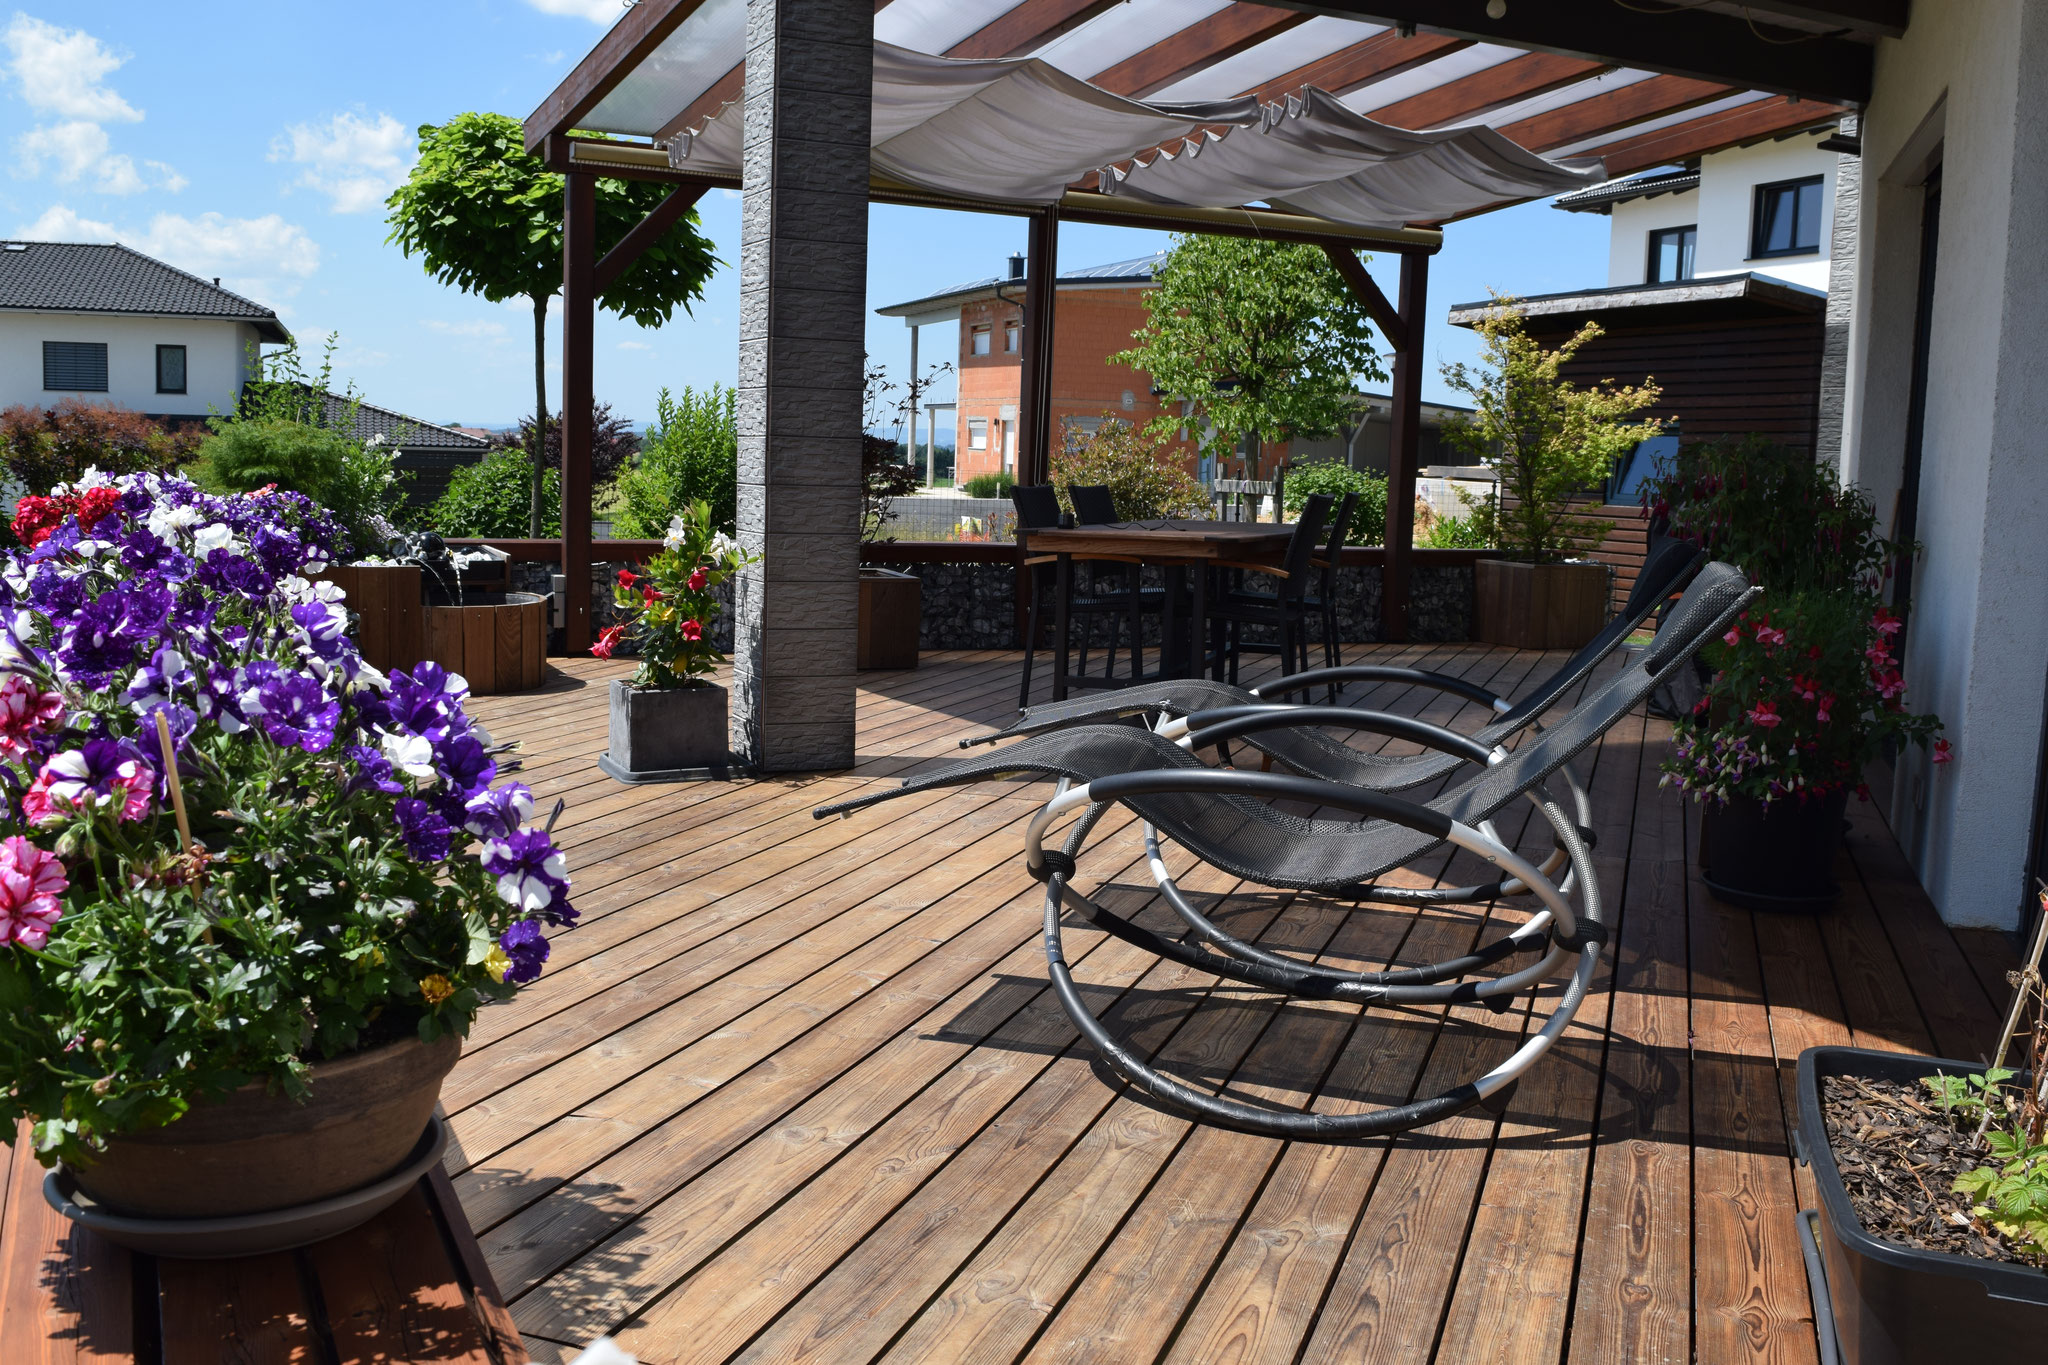 Dielen Terrasse Dielen Fr Terrasse Great Interesting Null With Wpc Dielen